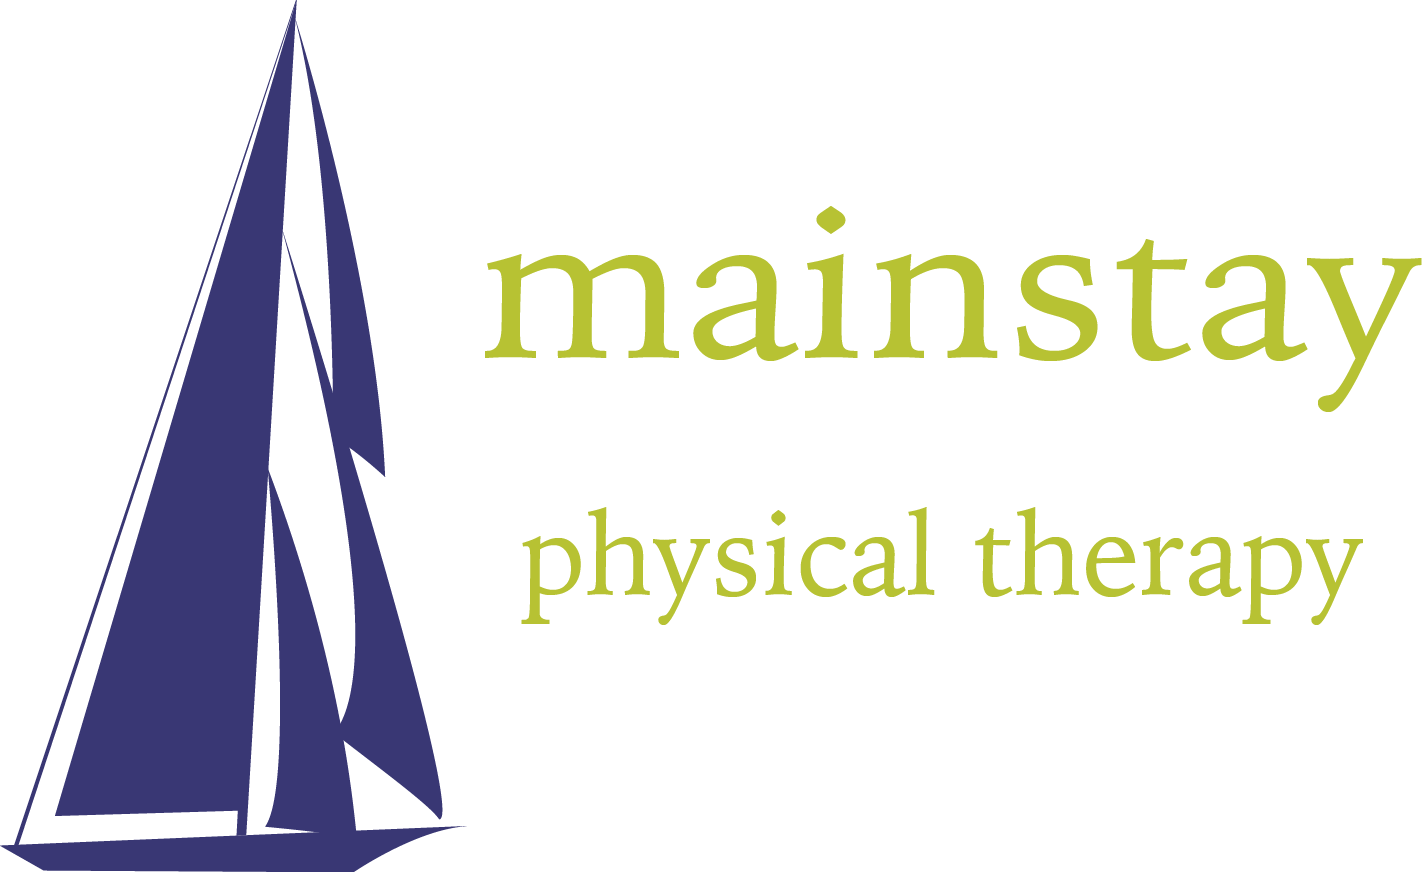 Mainstay Physical Therapy